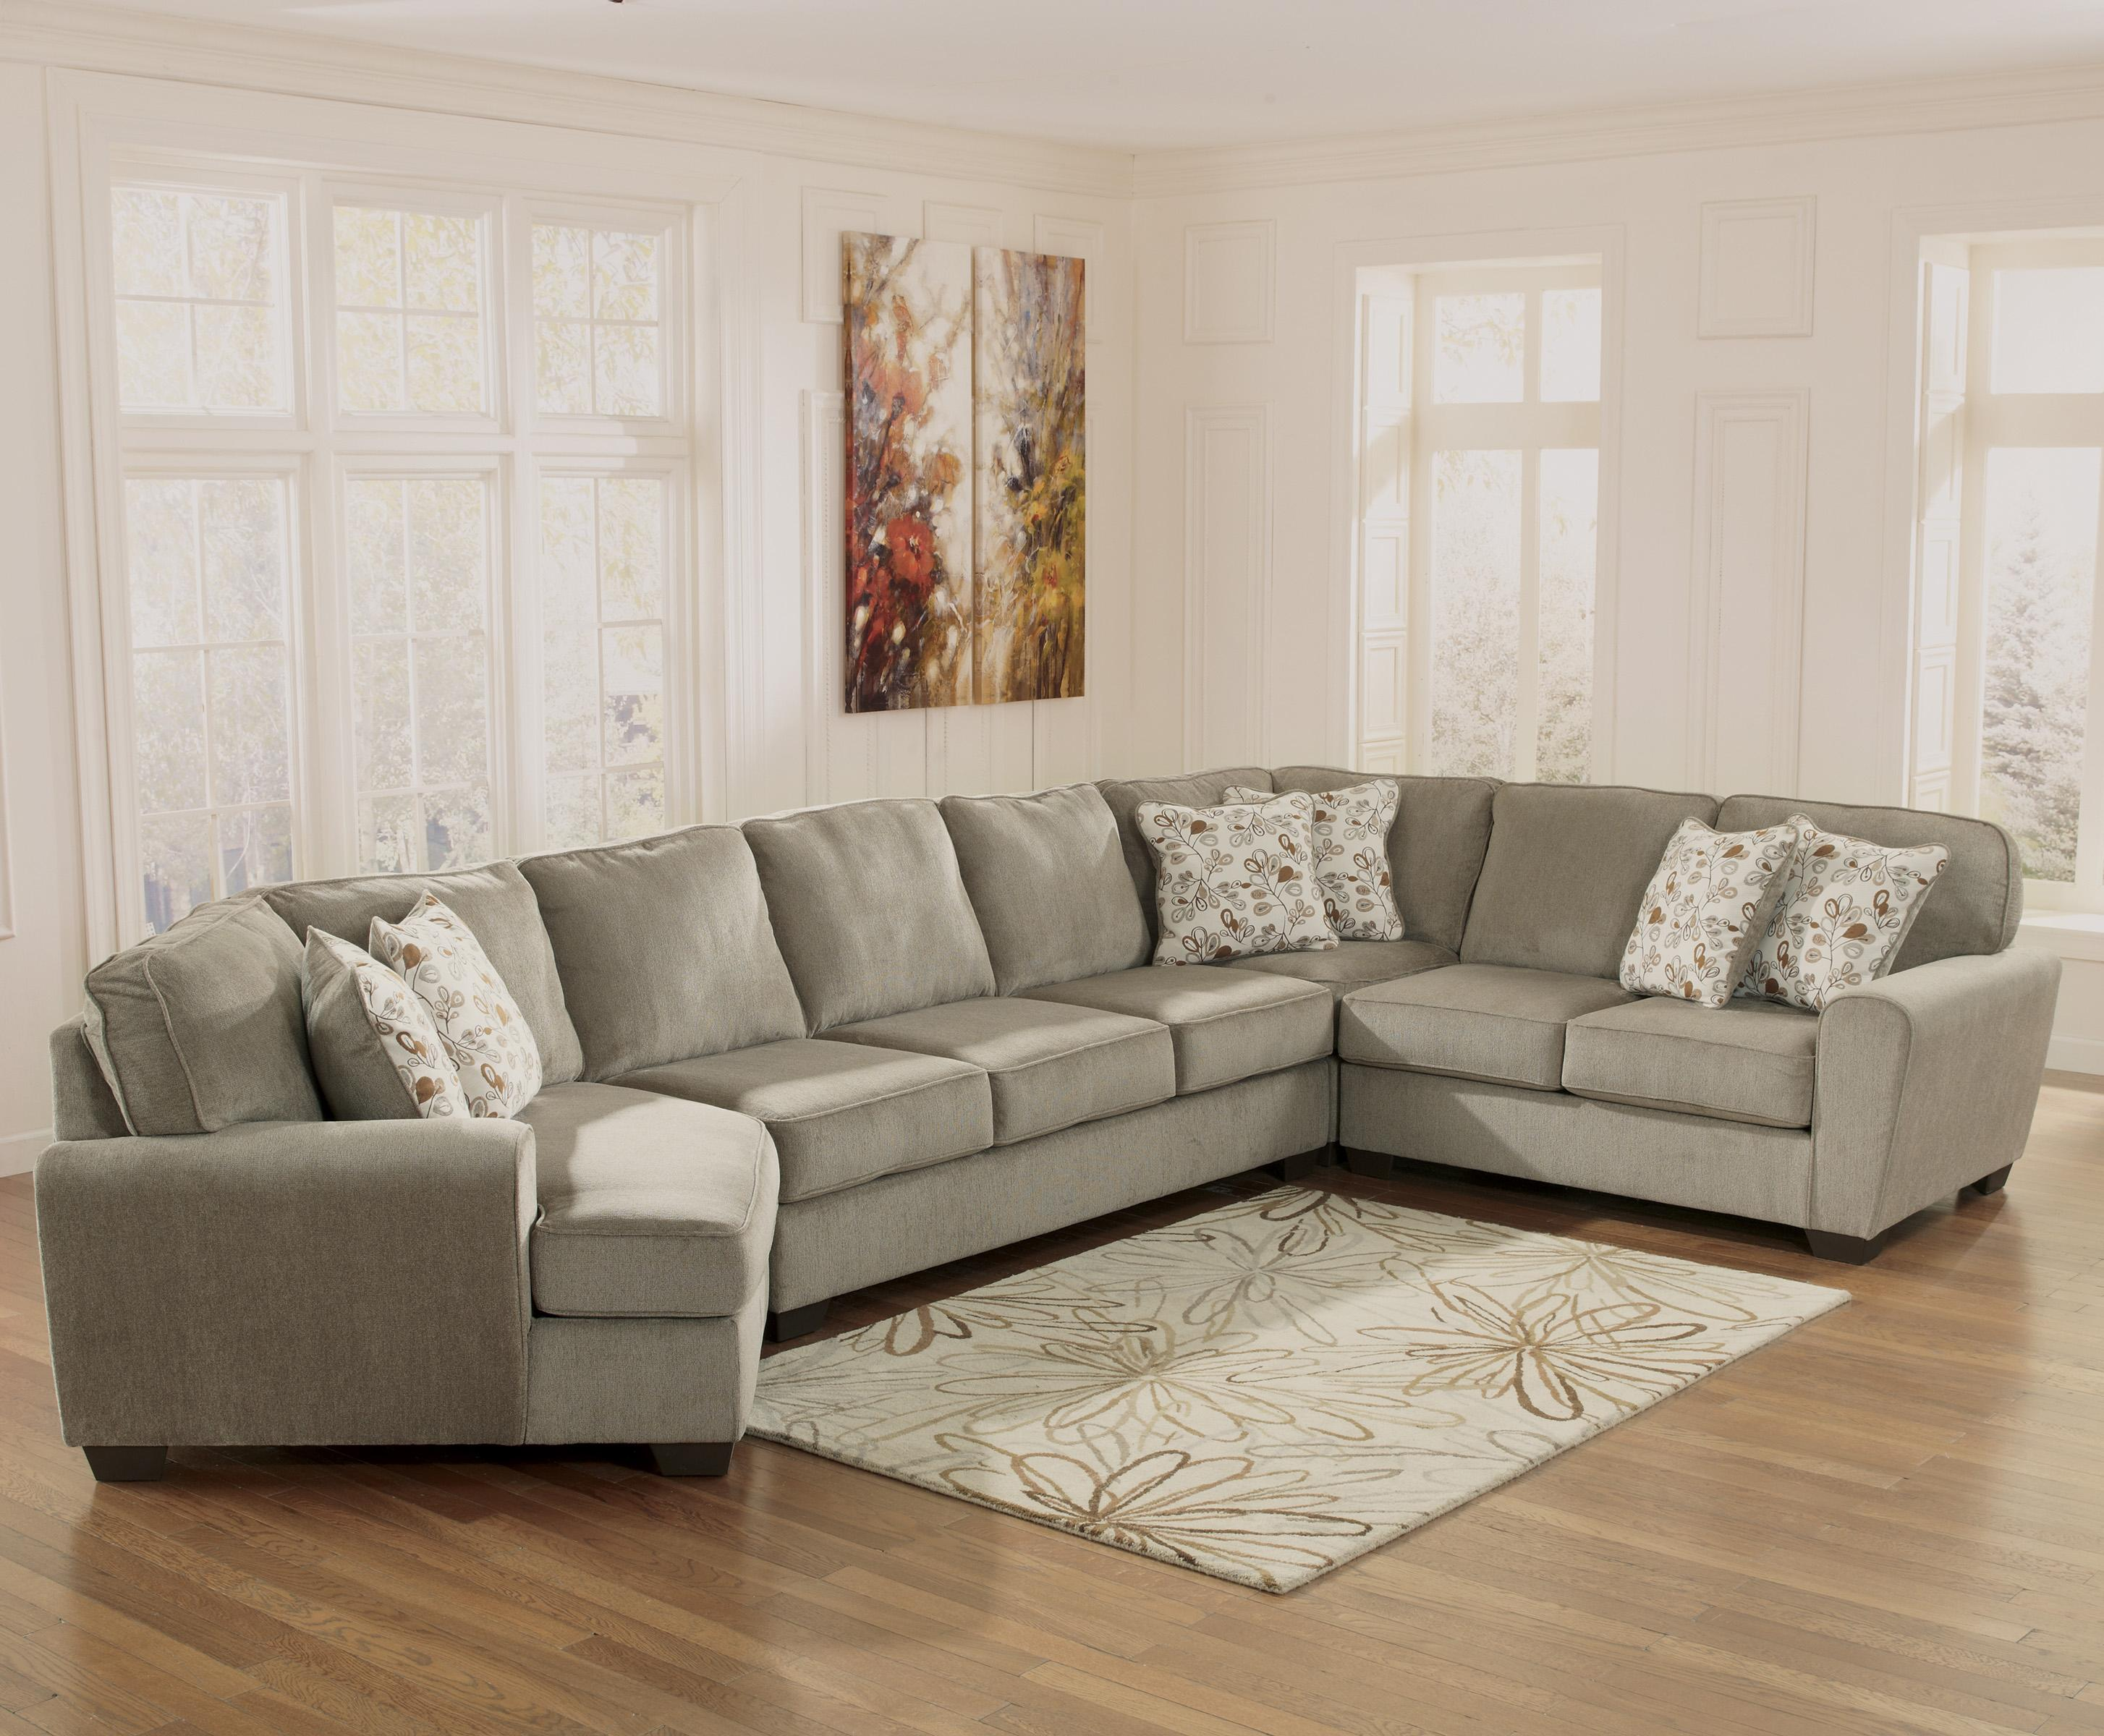 Patola Park - Patina 4-Piece Sectional with Left Cuddler by Ashley Furniture at Lapeer Furniture & Mattress Center